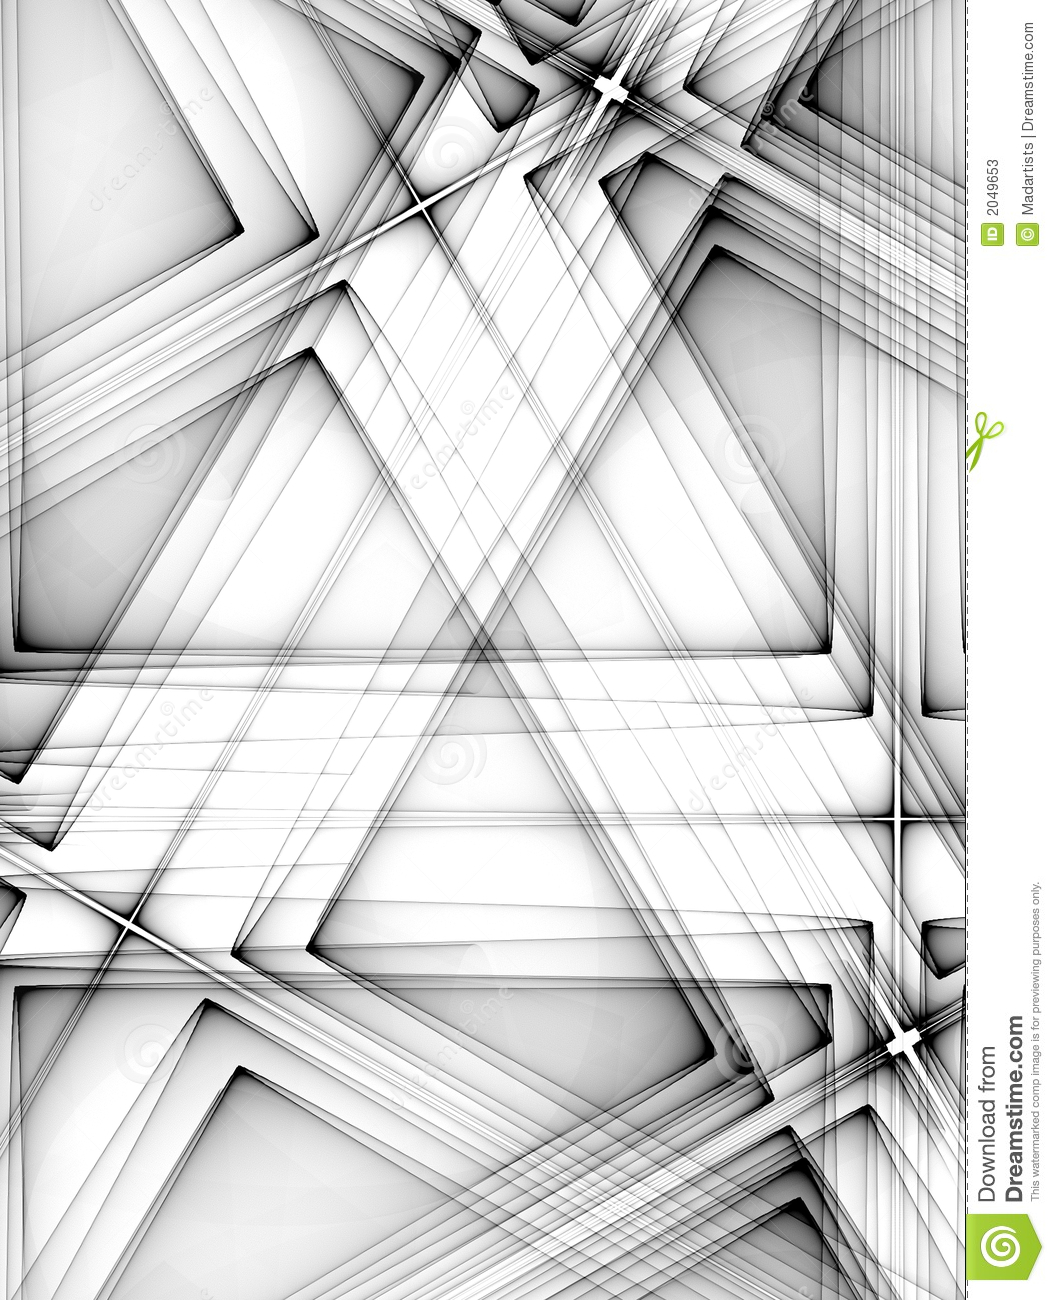 Black And White Line Designs : Diagonal black lines pattern stock photos image